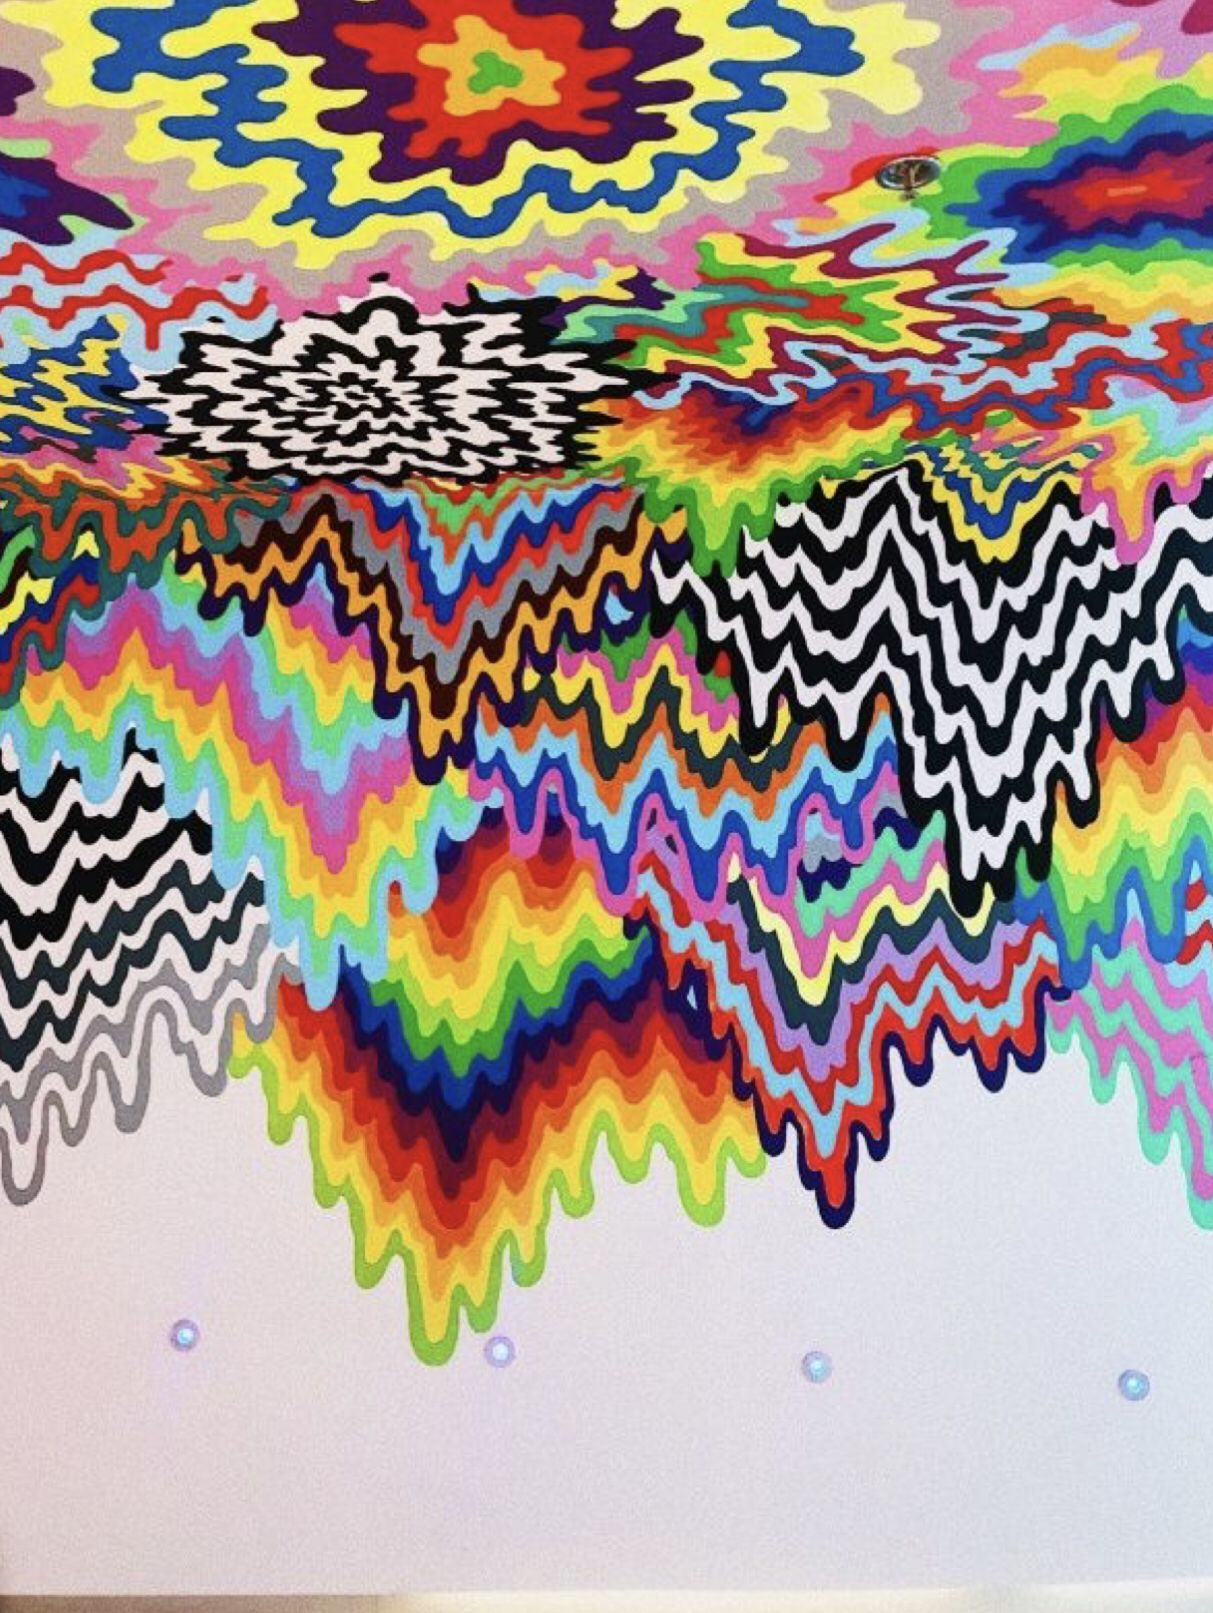 Pin By Alexis Cassidy On Backgrounds Hippie Painting Trippy